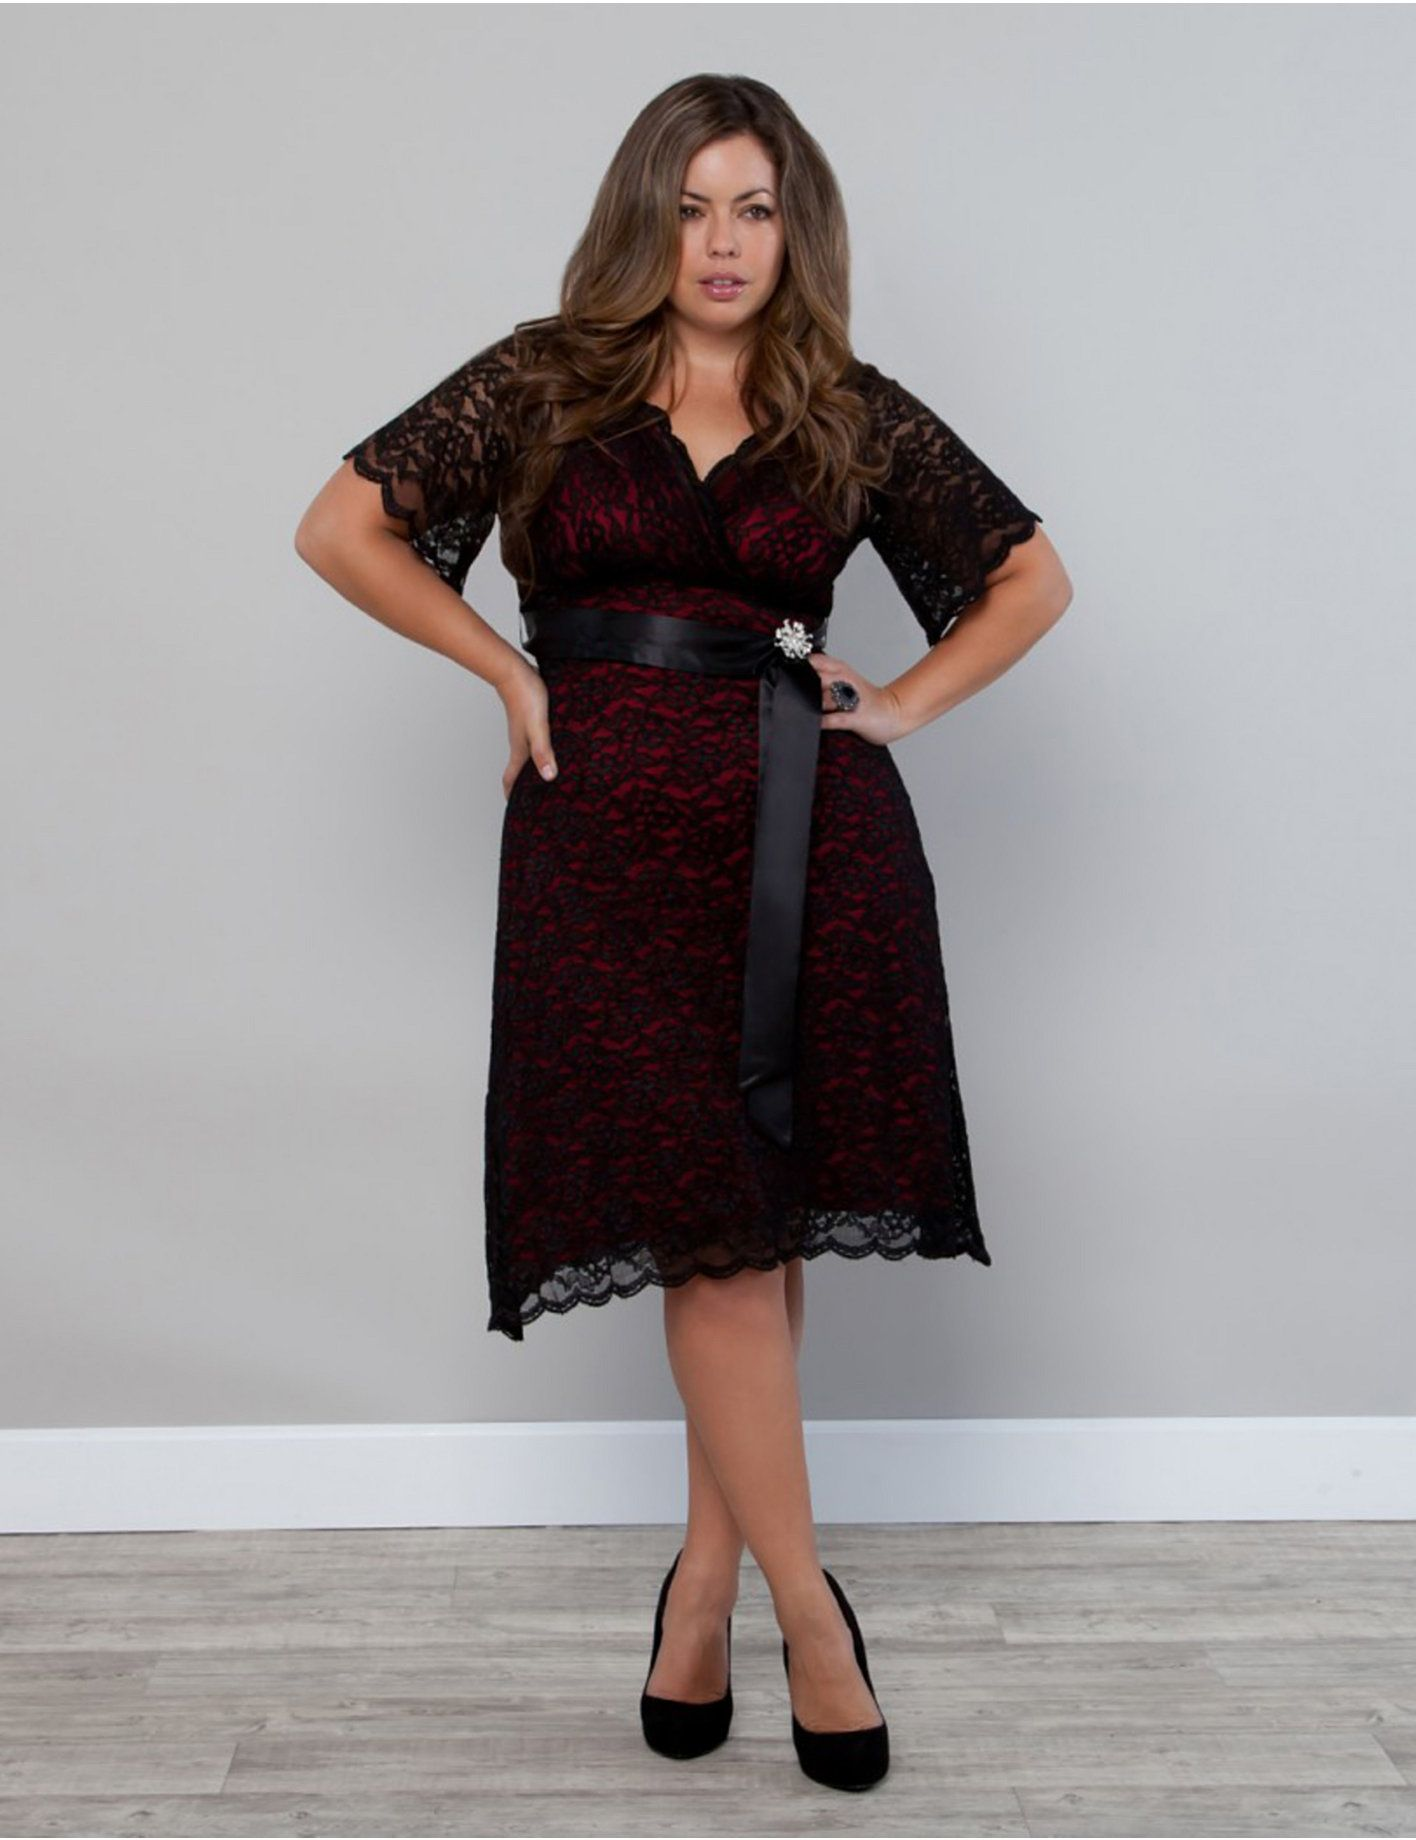 Lane Bryant Clothing Plus Size Girls Online India Store Design The Fashion Clothes For Women